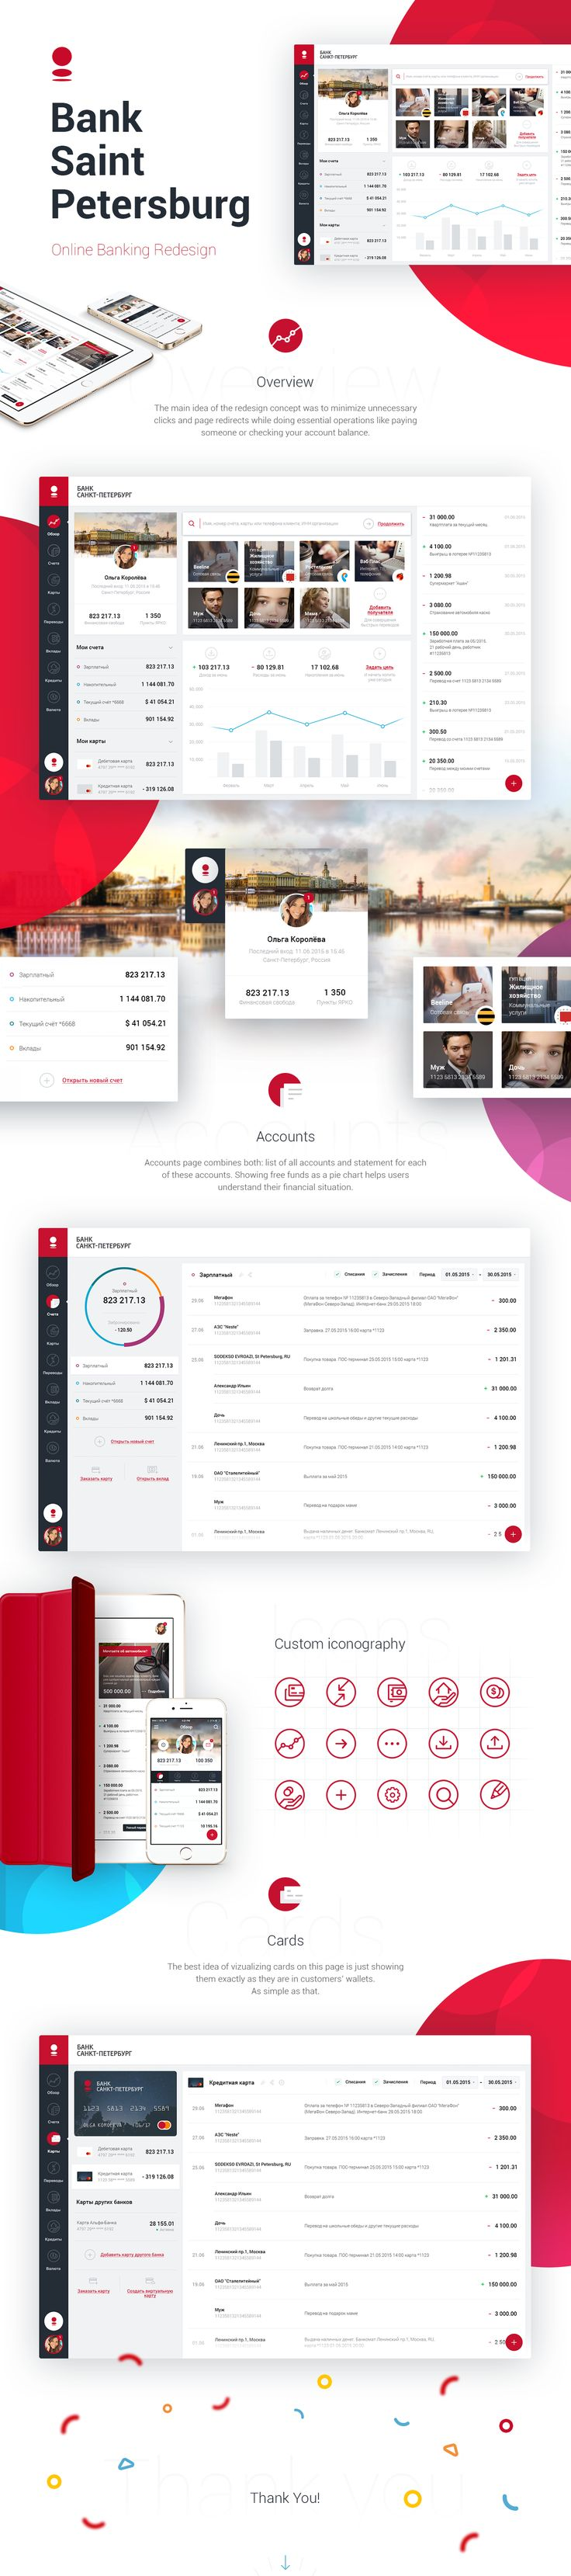 BSPB - Complete redesign of online bank on Behance